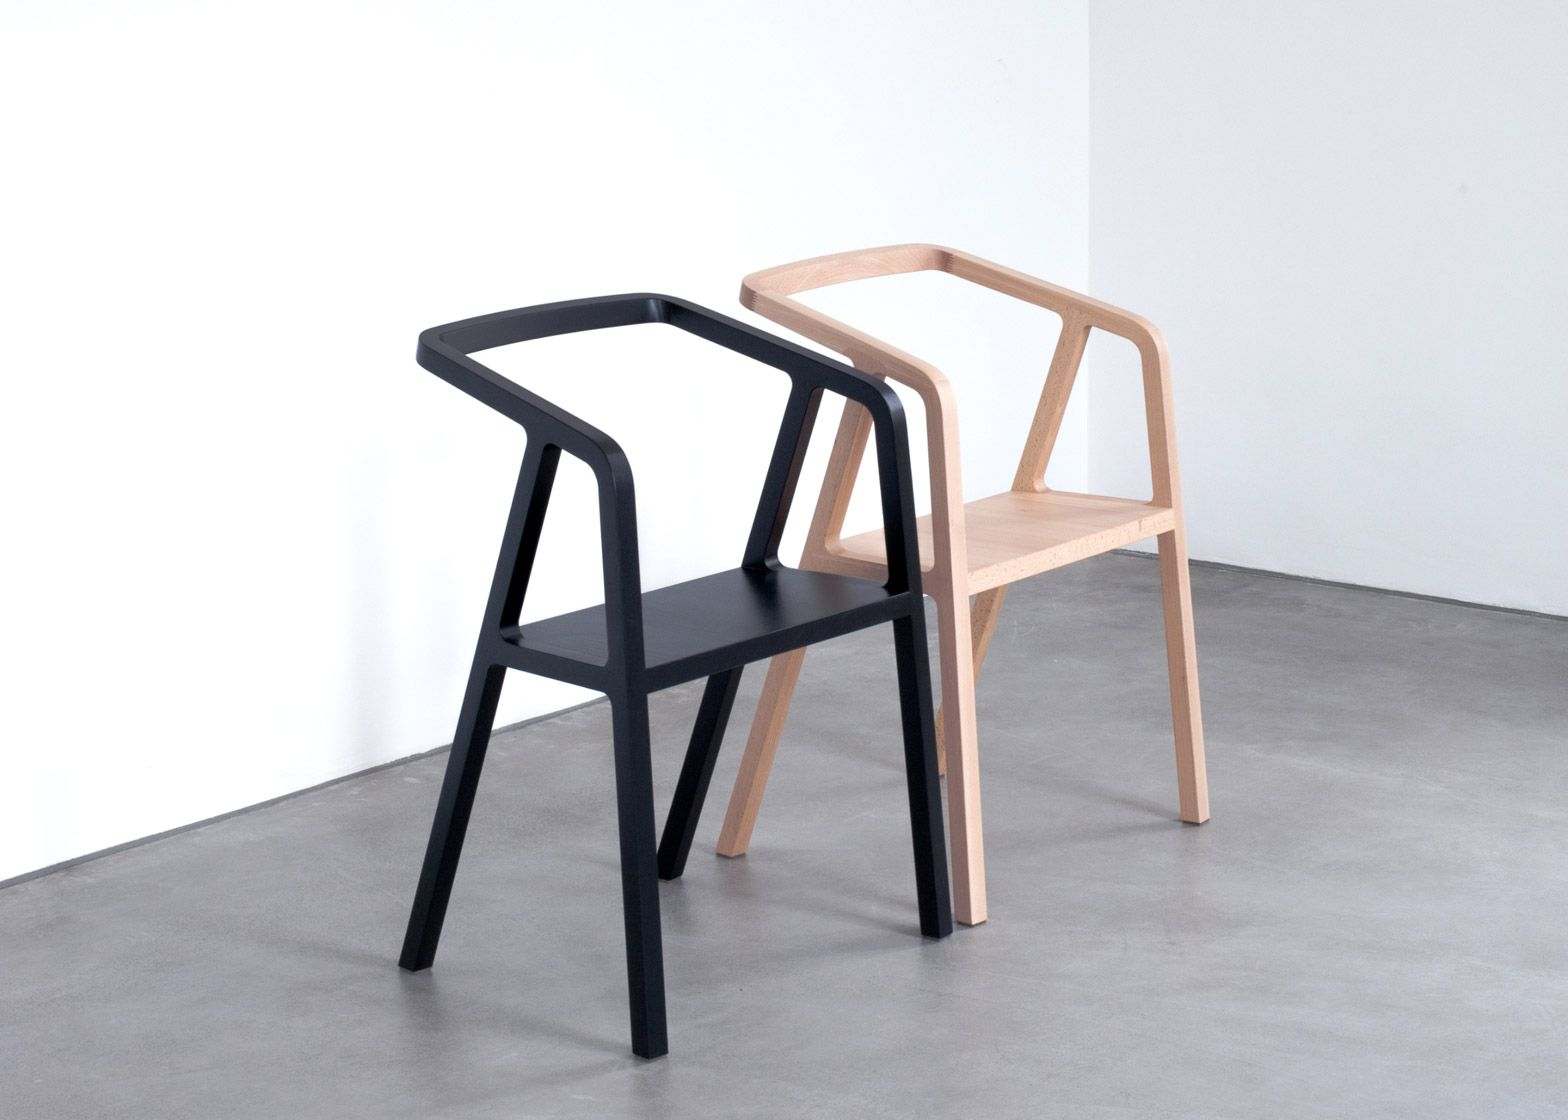 minimal furniture design. achair austrian product designer thomas feichtner has collaborated with a group of craftspeople minimal furniture design